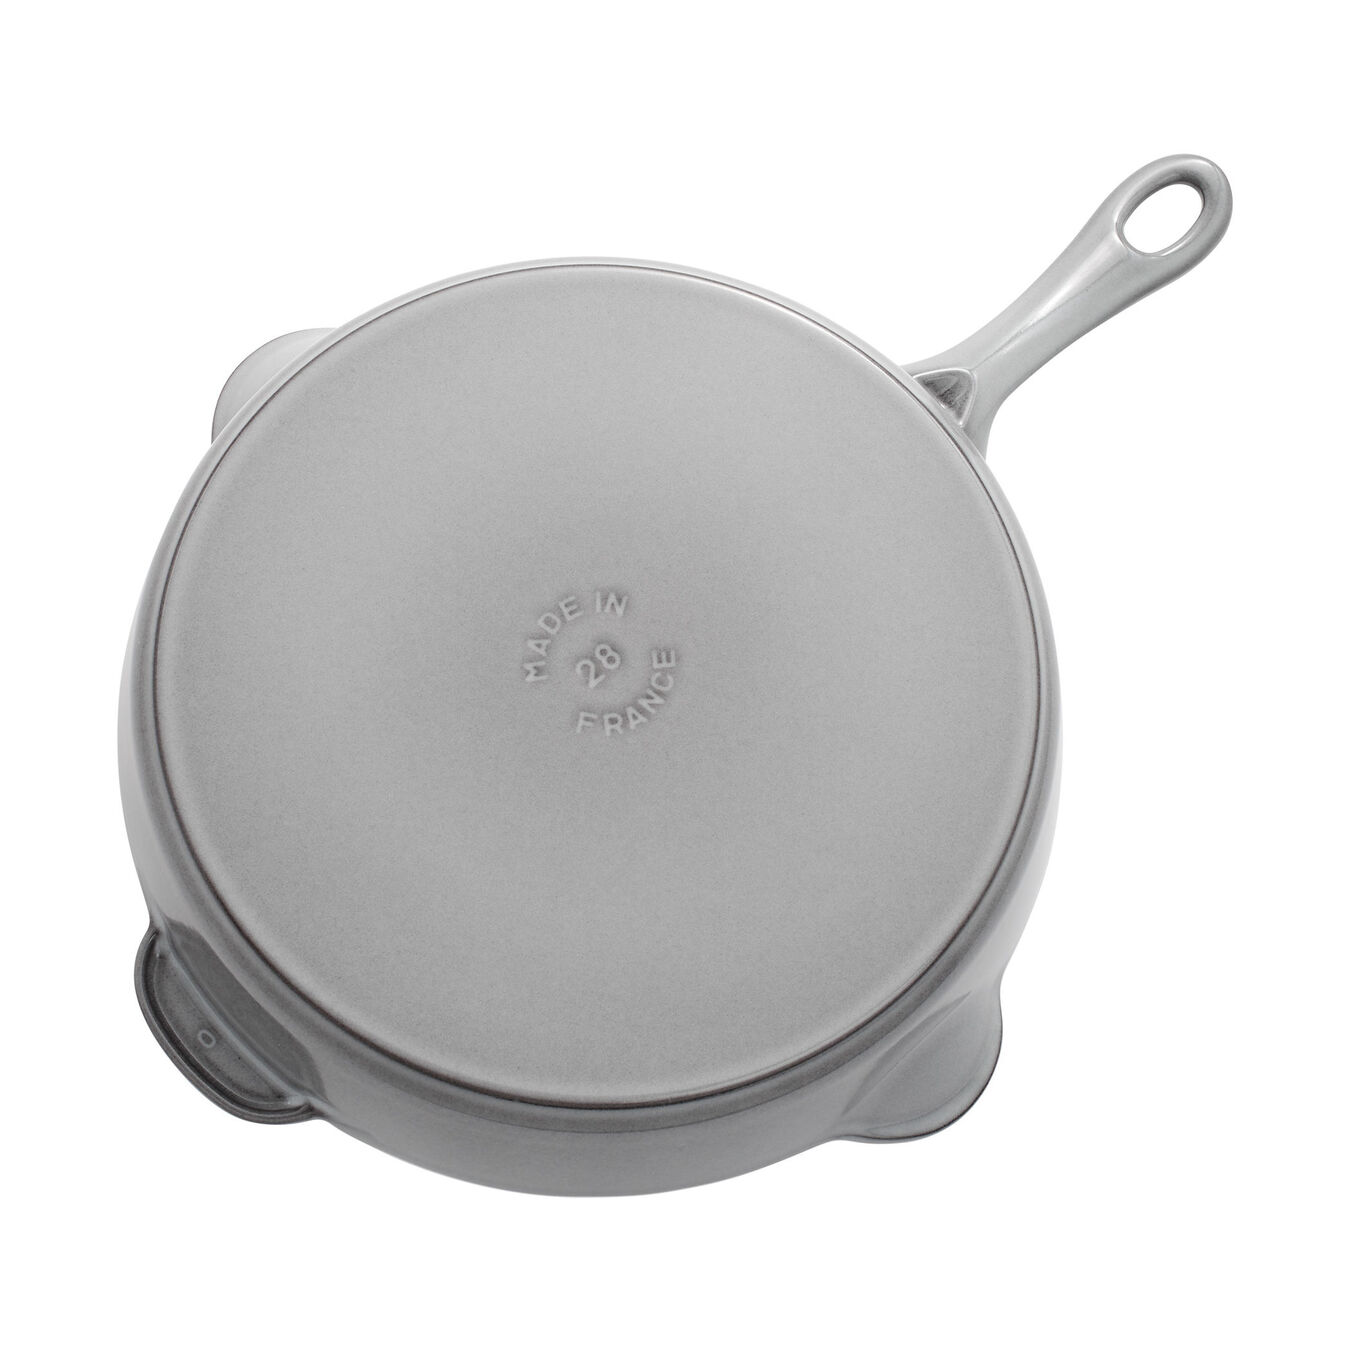 11-inch, Frying pan, graphite grey,,large 4